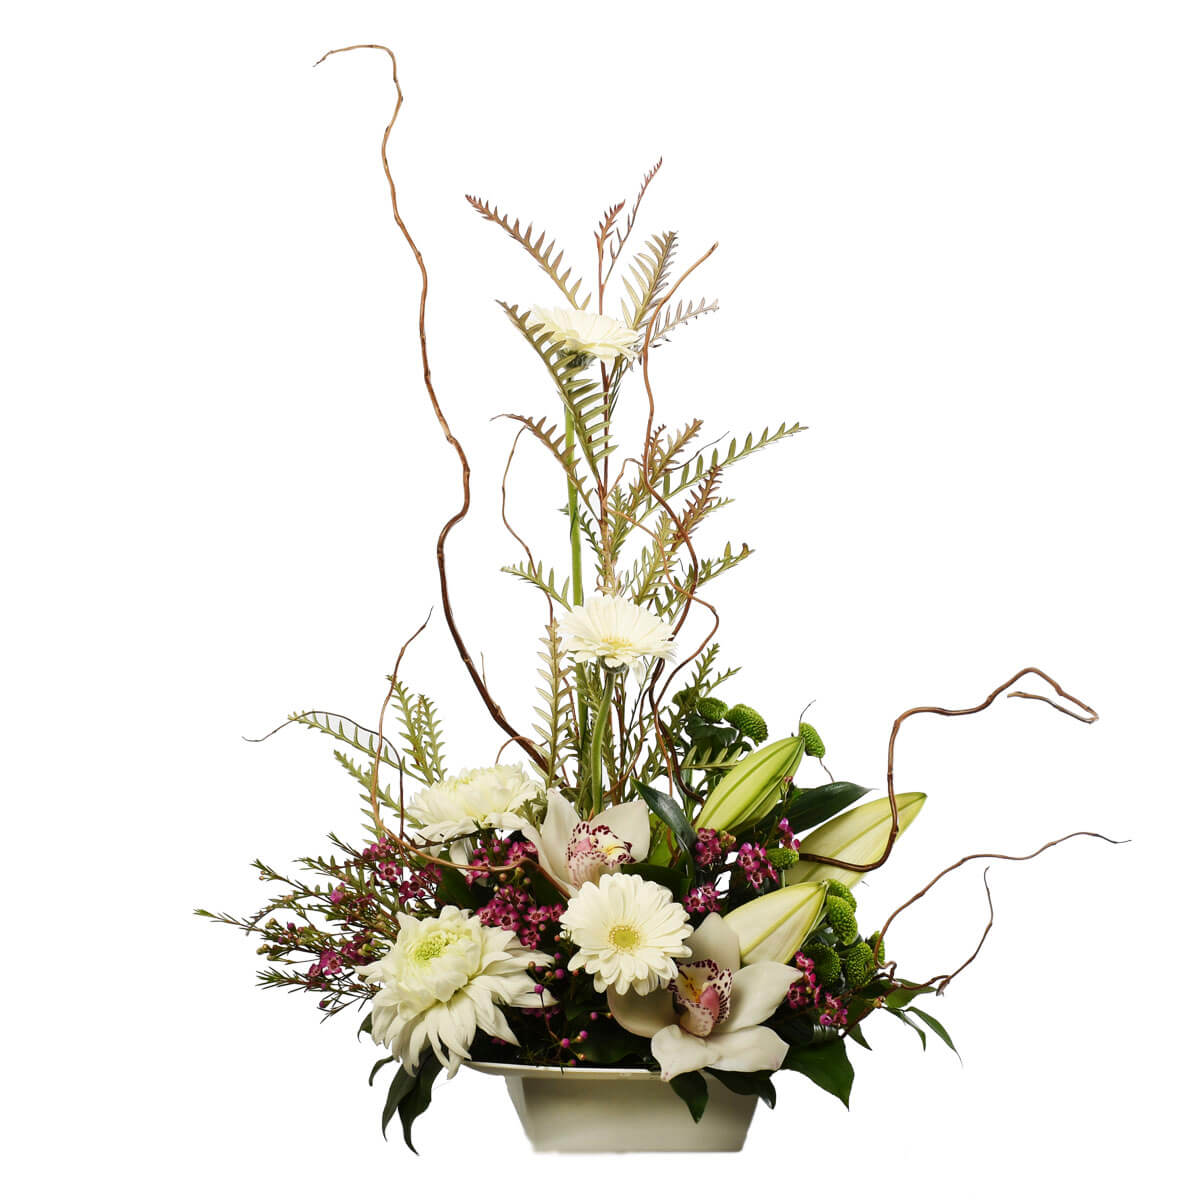 Funeral flower arrangements for home for delivery in Vancouver and Burnaby